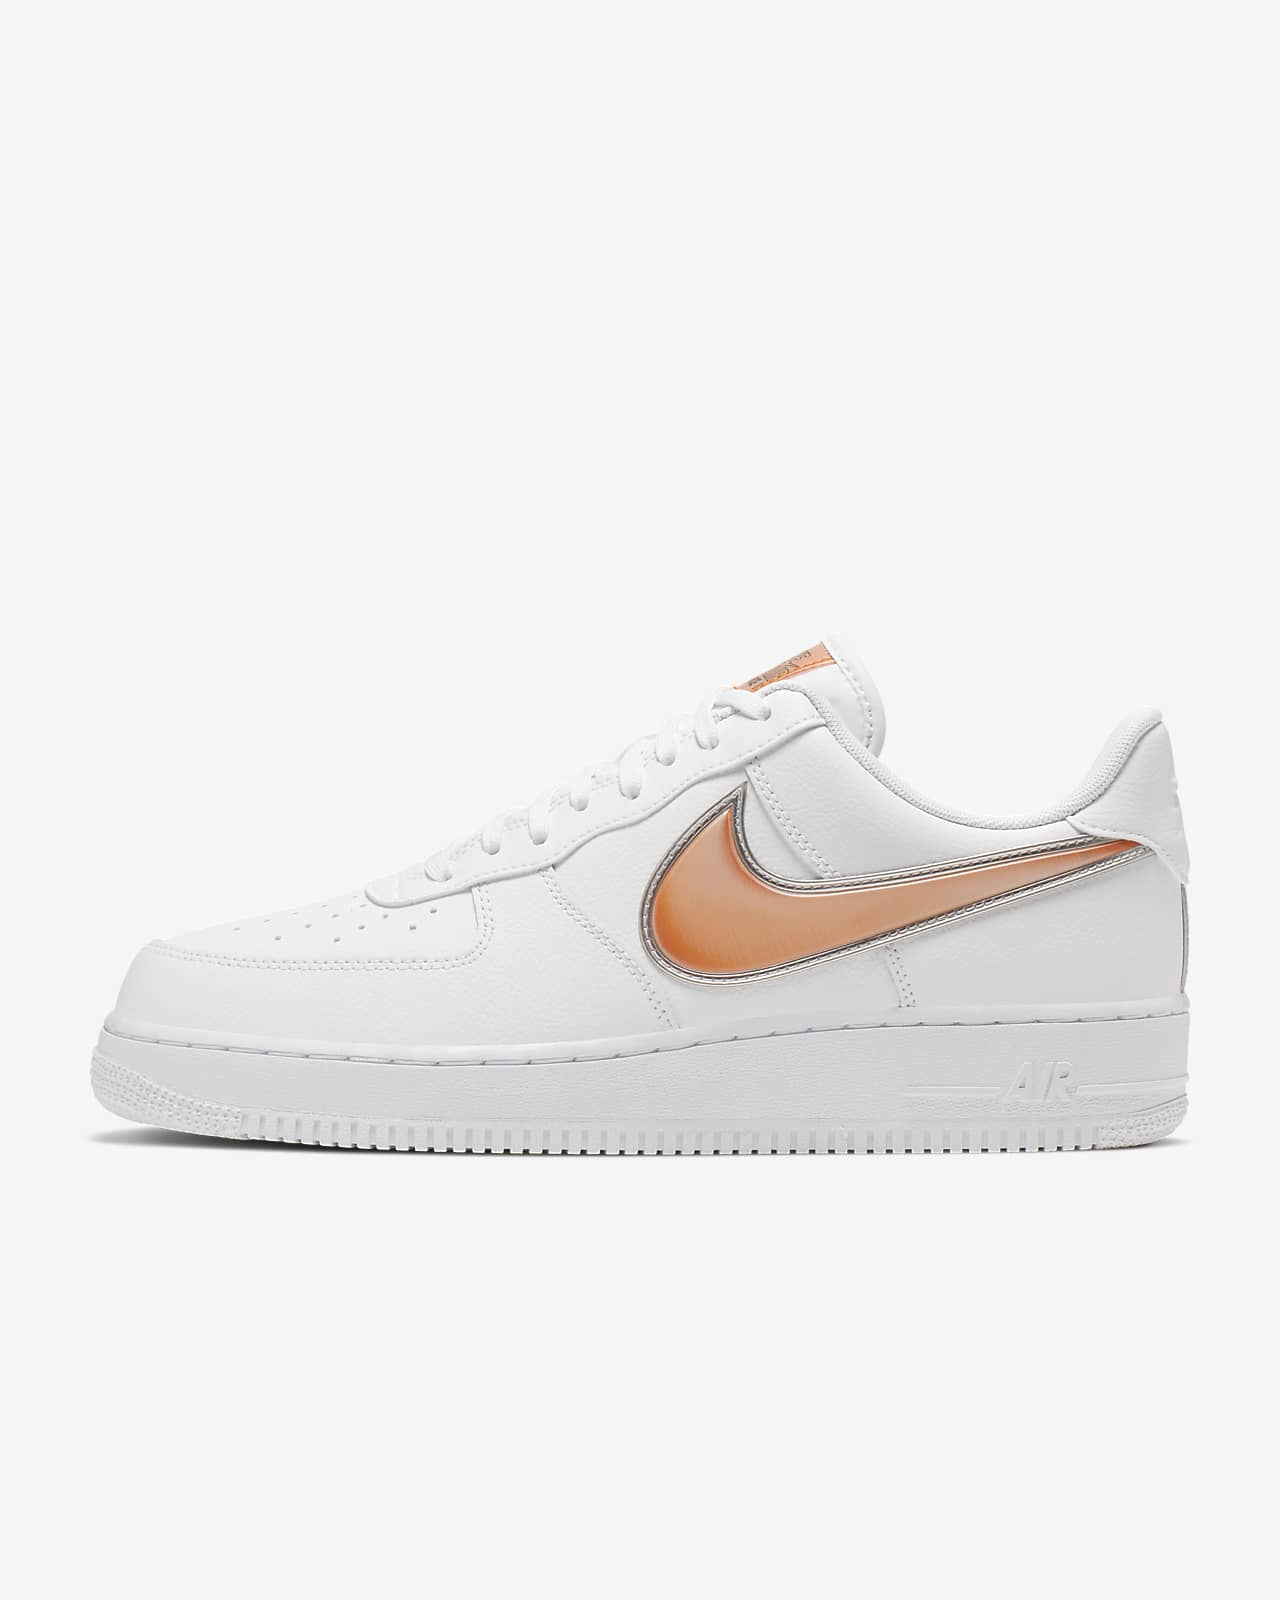 Nike Air Force 1 '07 LV8 3 男子运动鞋